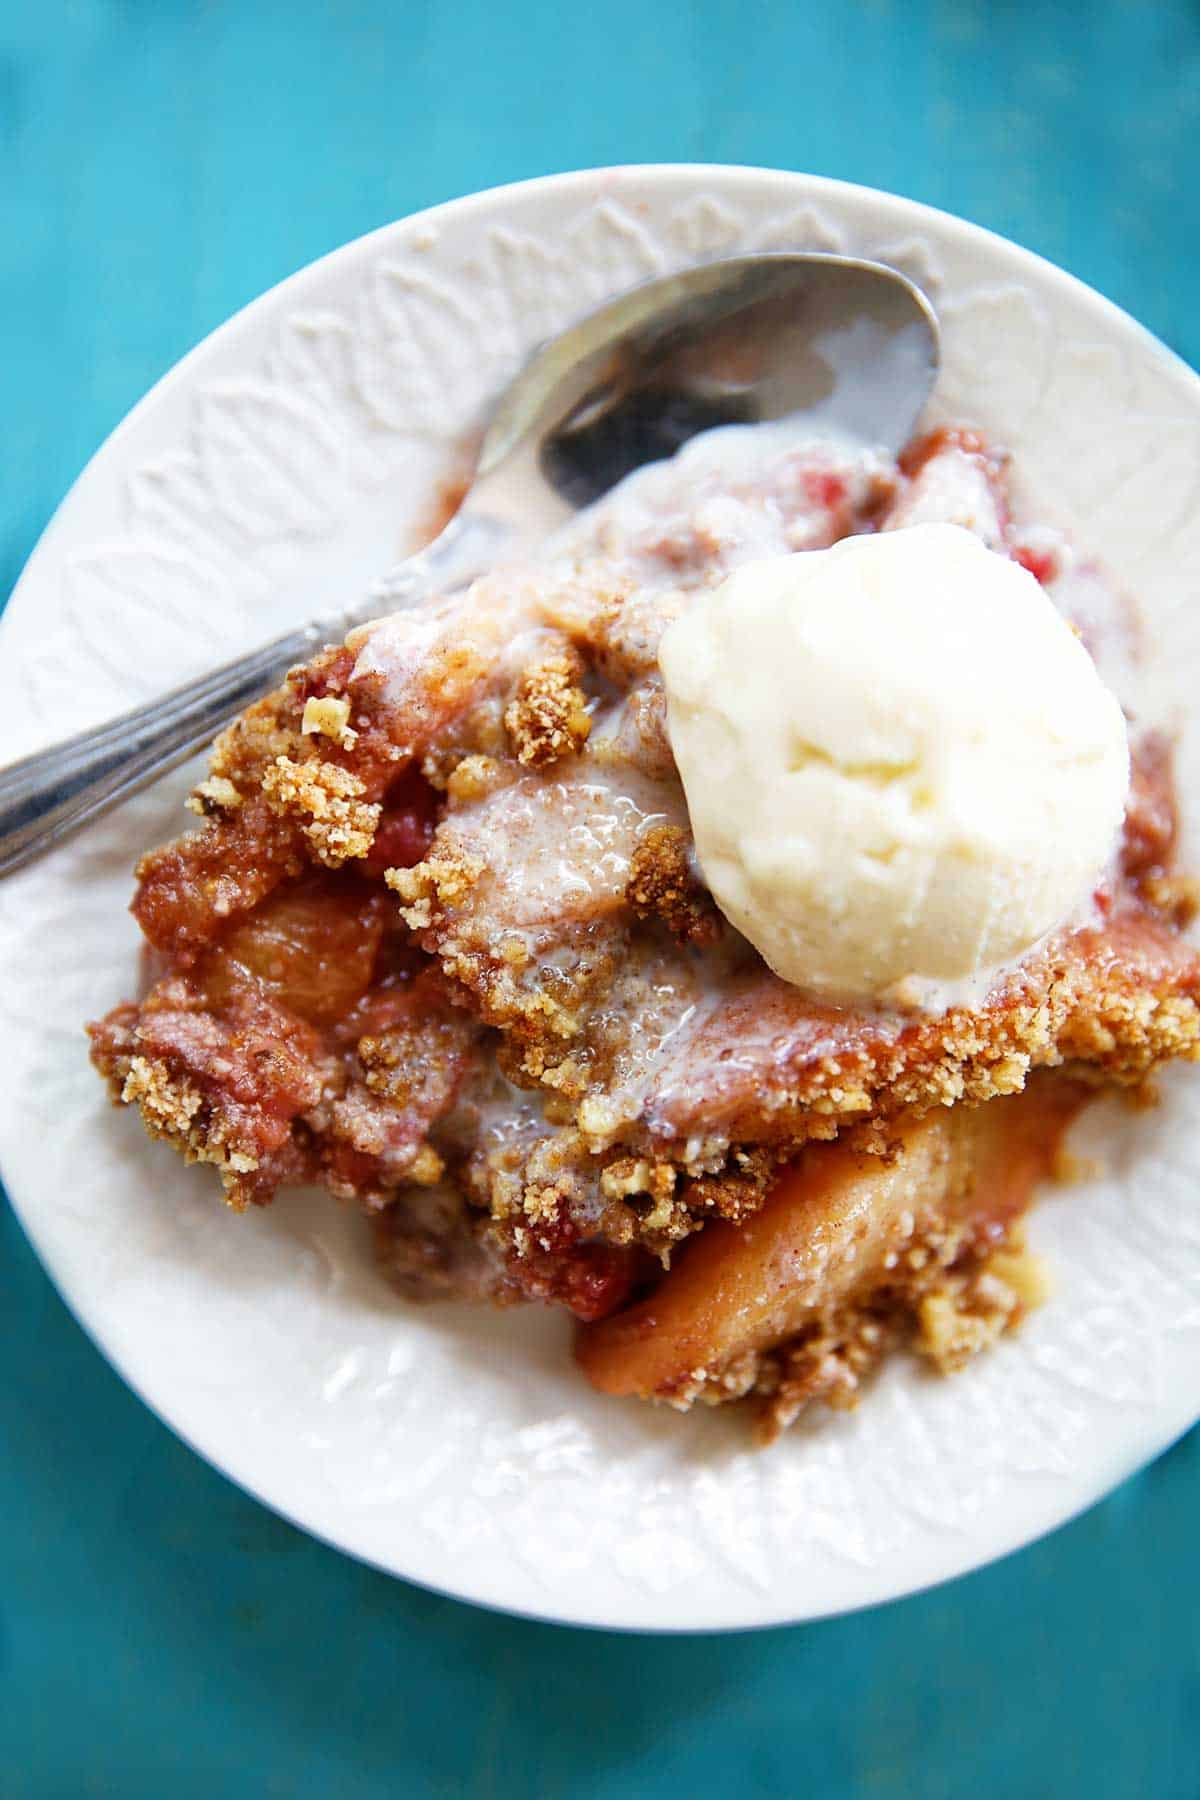 How To Make A Raspberry Crumble